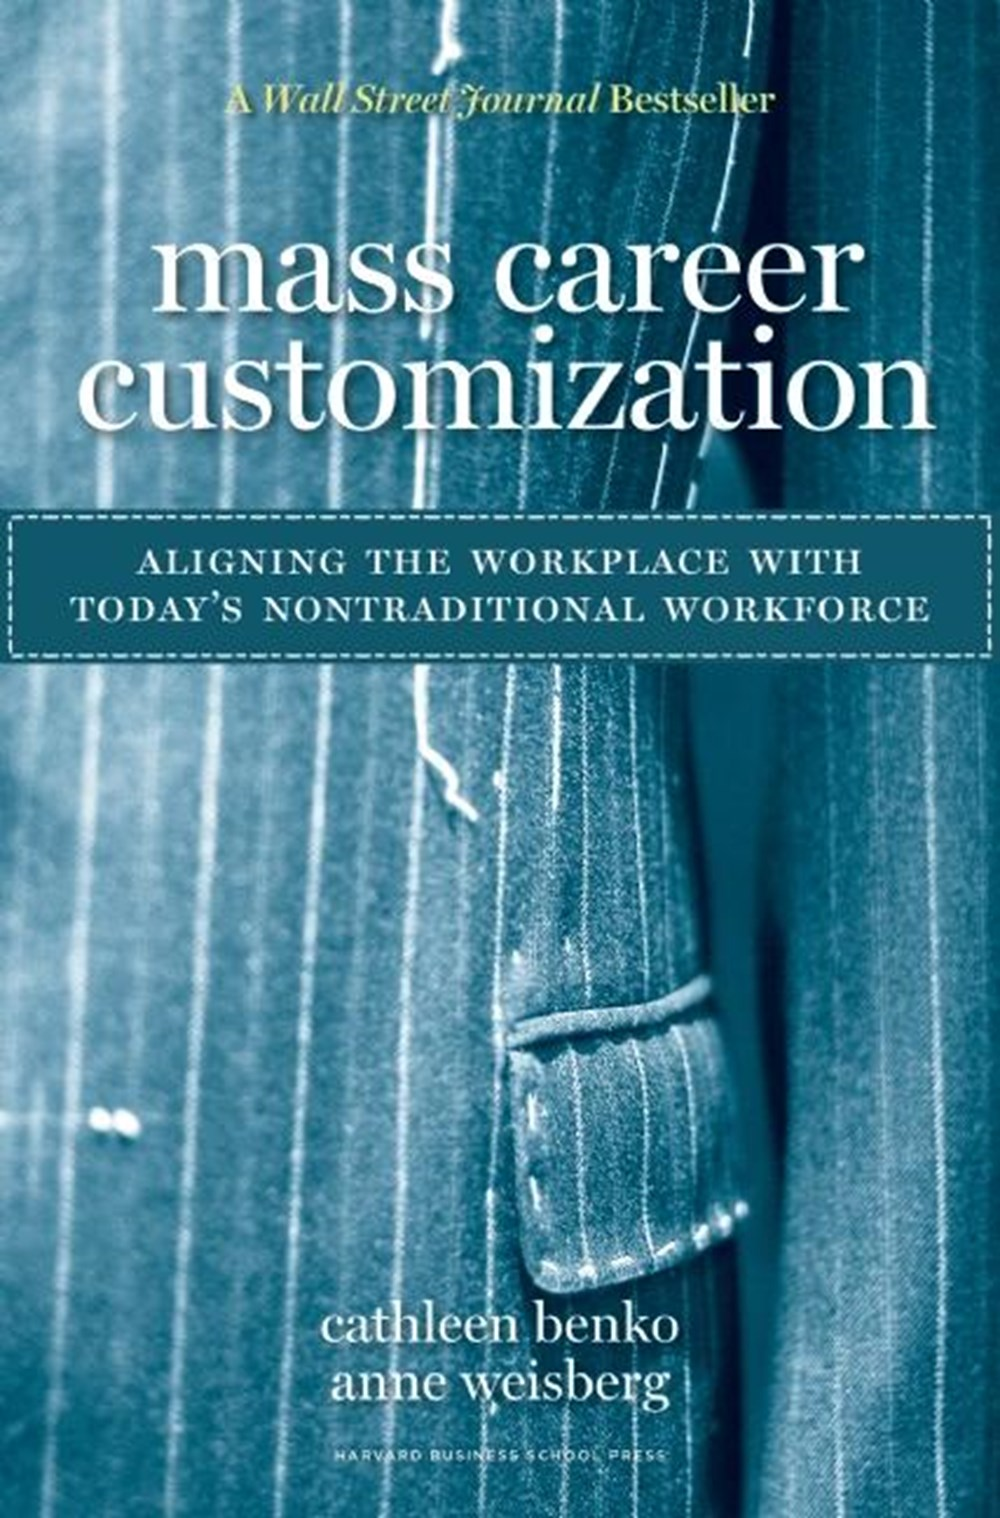 Mass Career Customization Aligning the Workplace with Today's Nontraditional Workforce